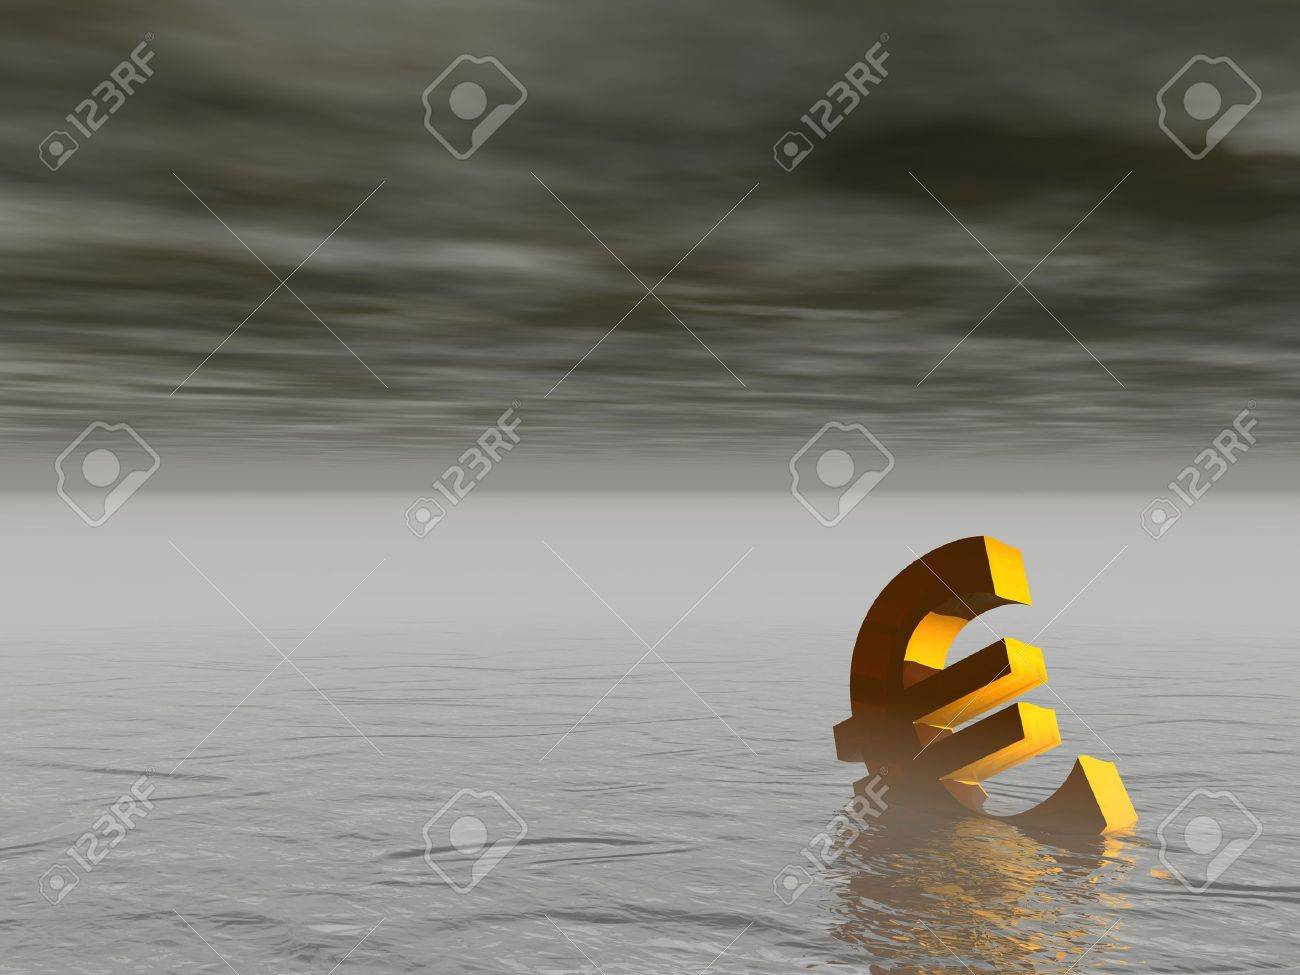 Golden euro drowning in the grey sea by stormy weather - 10163592